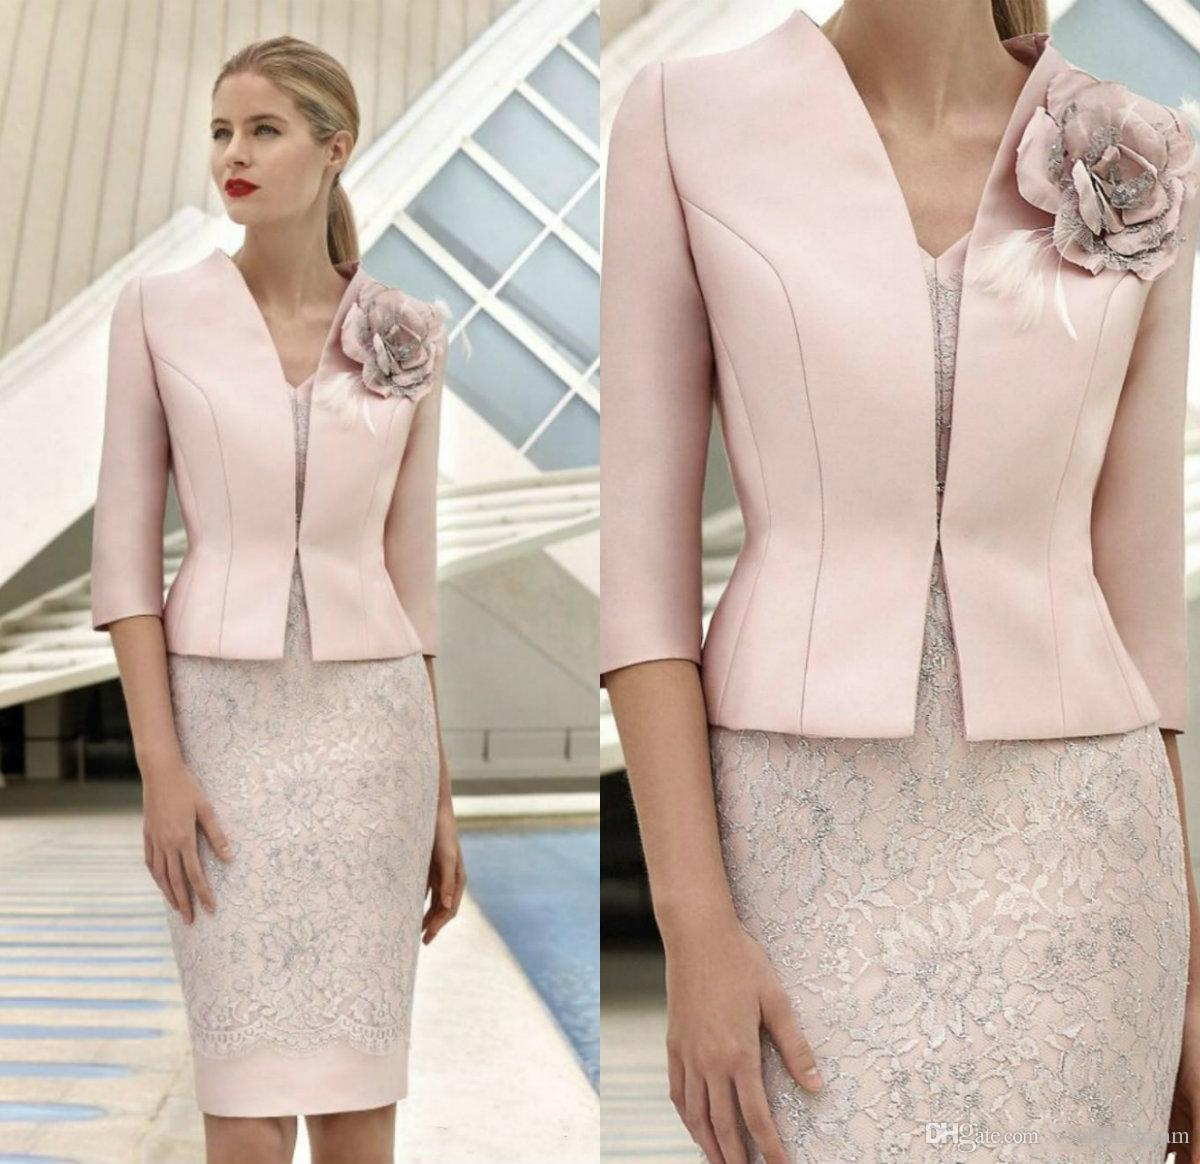 Elegant Pink Mother Of The Bride Dresses With Jacket Lace Appliqued Beads Wedding Guest Dress Knee Length Flower Formal Mother Outfit Prom